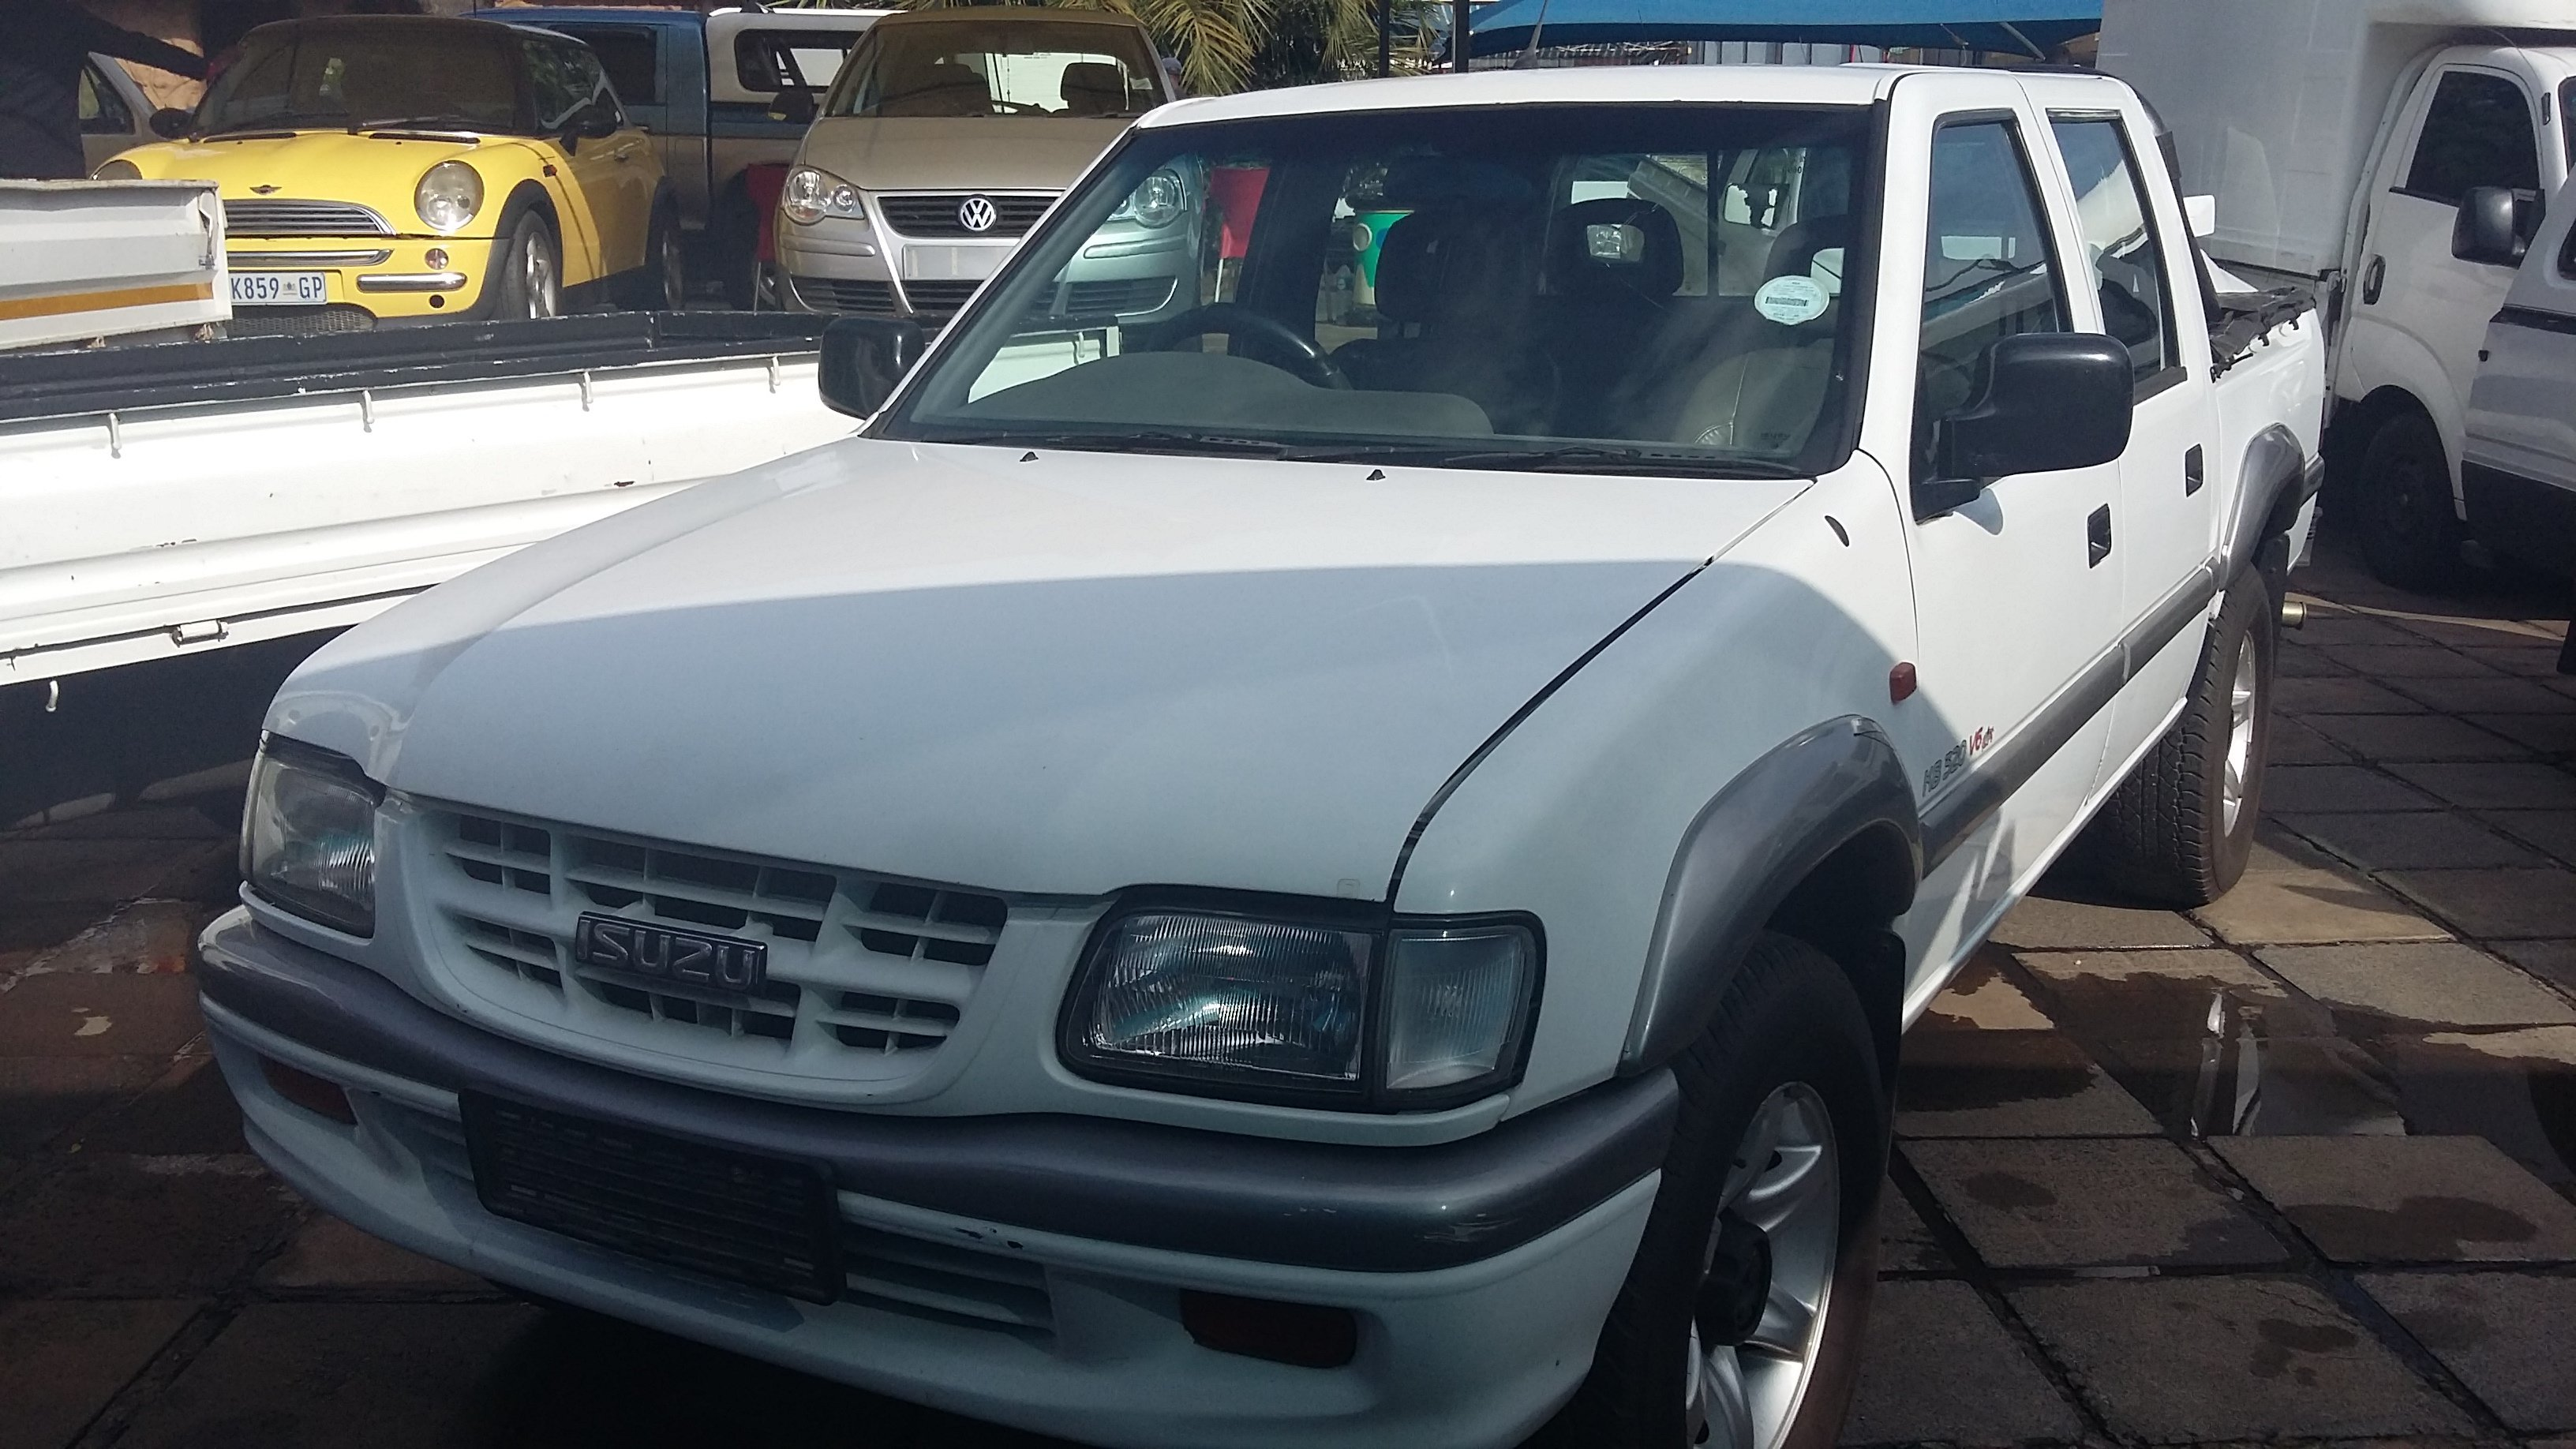 For Sale Isuzu Kb 320 Lx 4x2 2000 Bakkie Double Cab Used Price